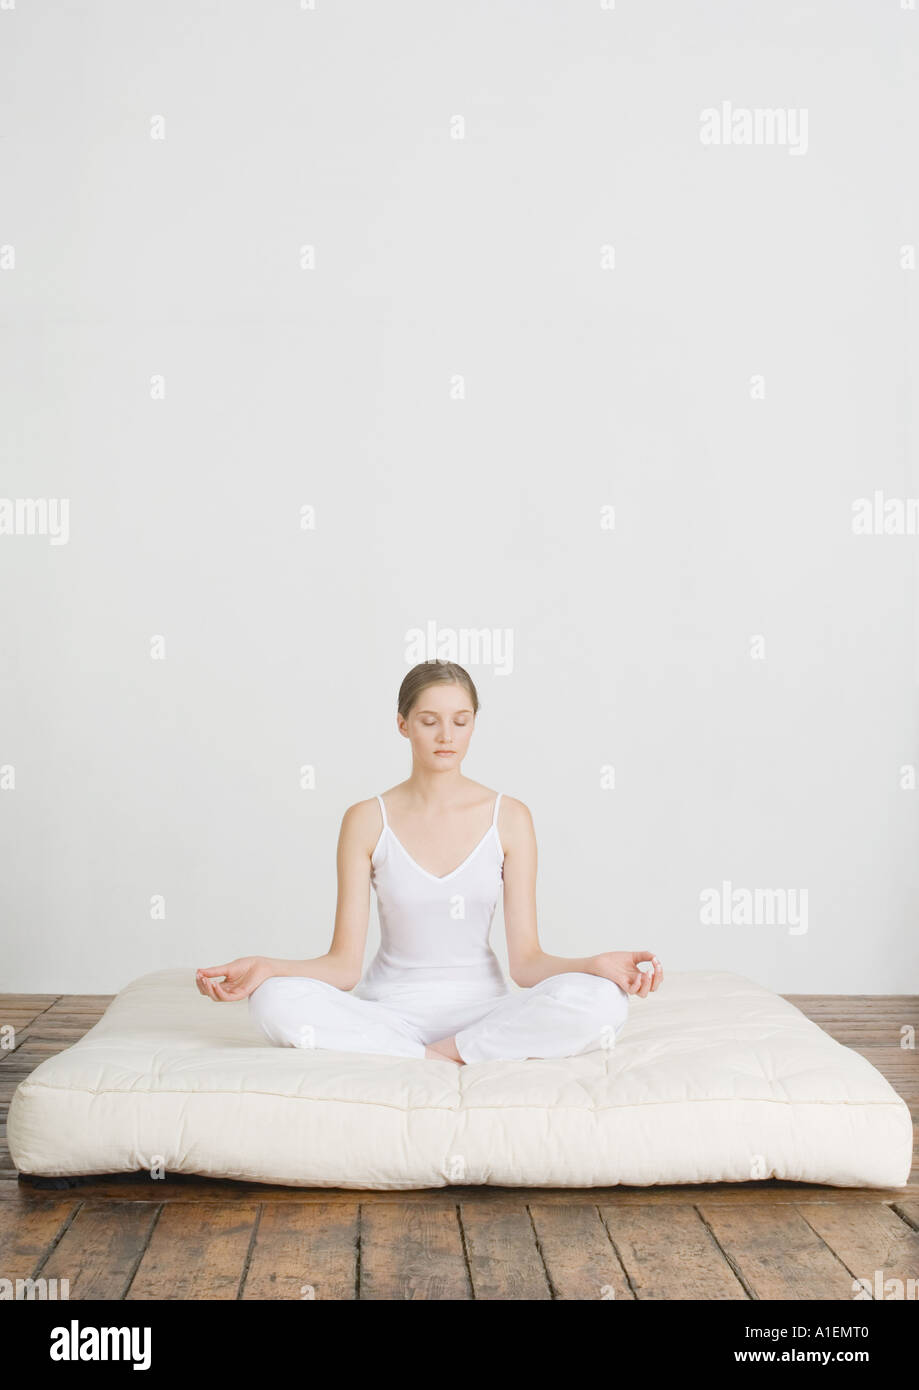 Young woman sitting in lotus position on futon mattress - Stock Image